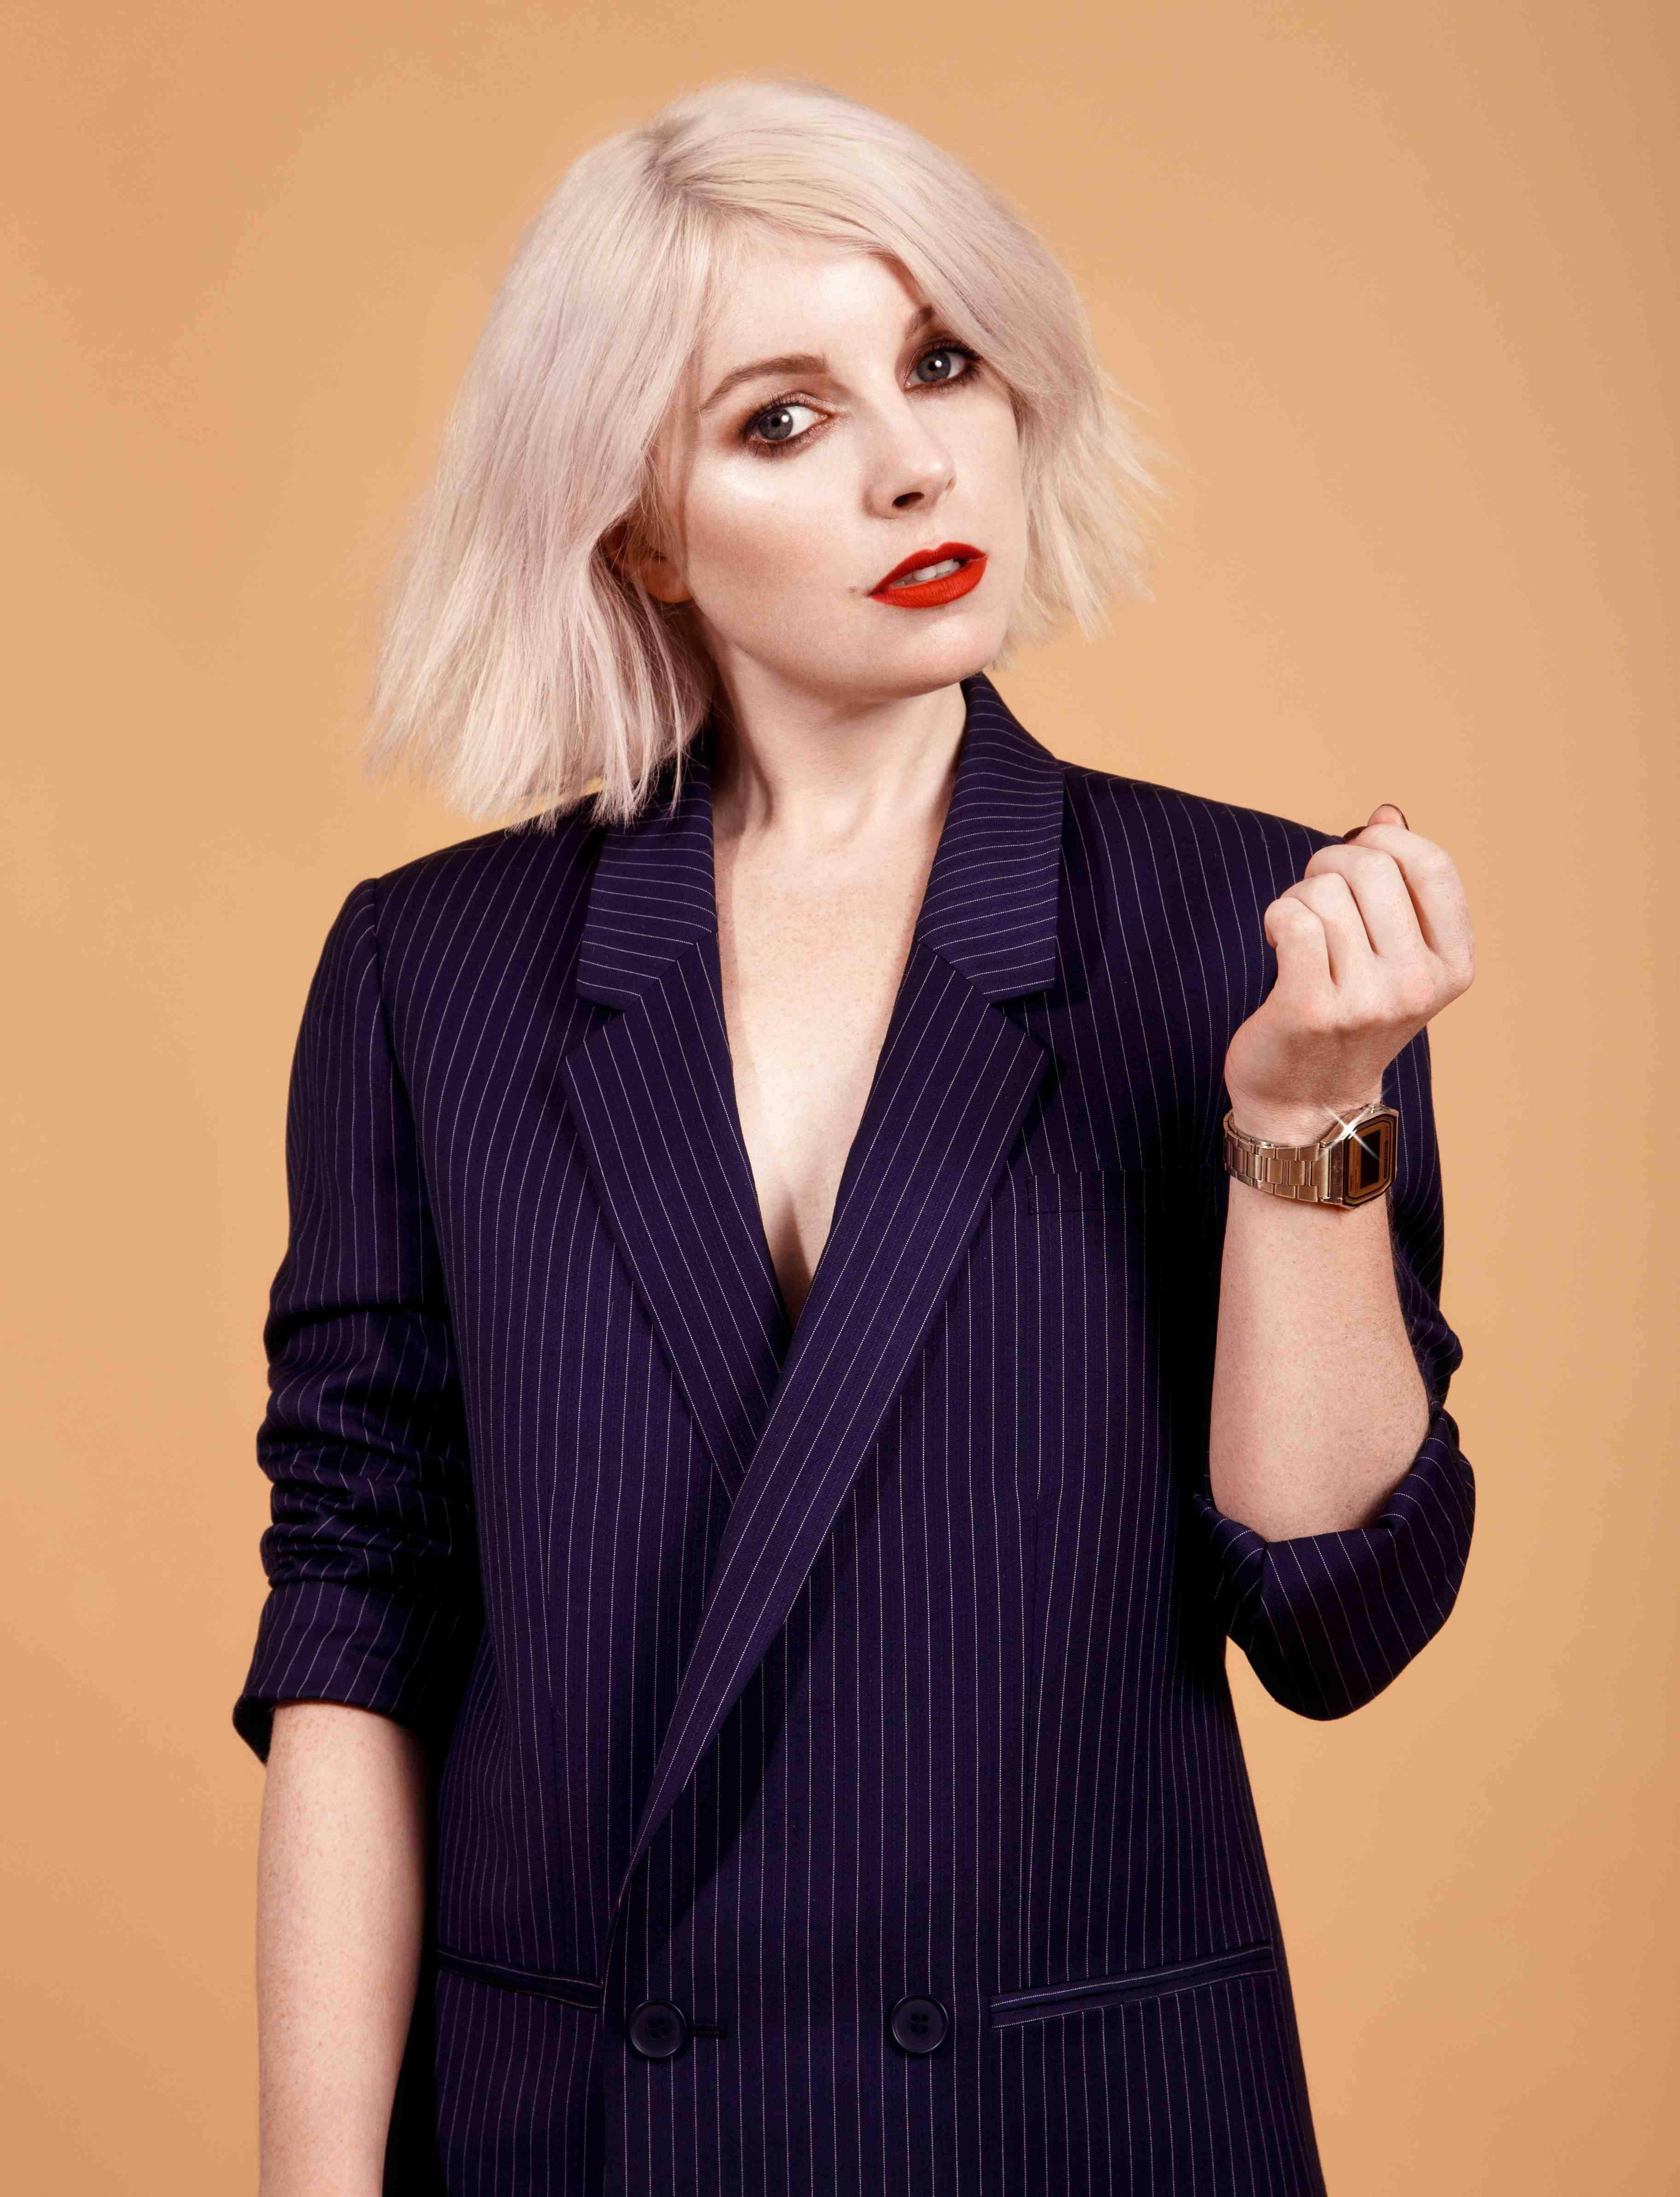 Little Boots Announces New Album Working Girl For July 2015 Release